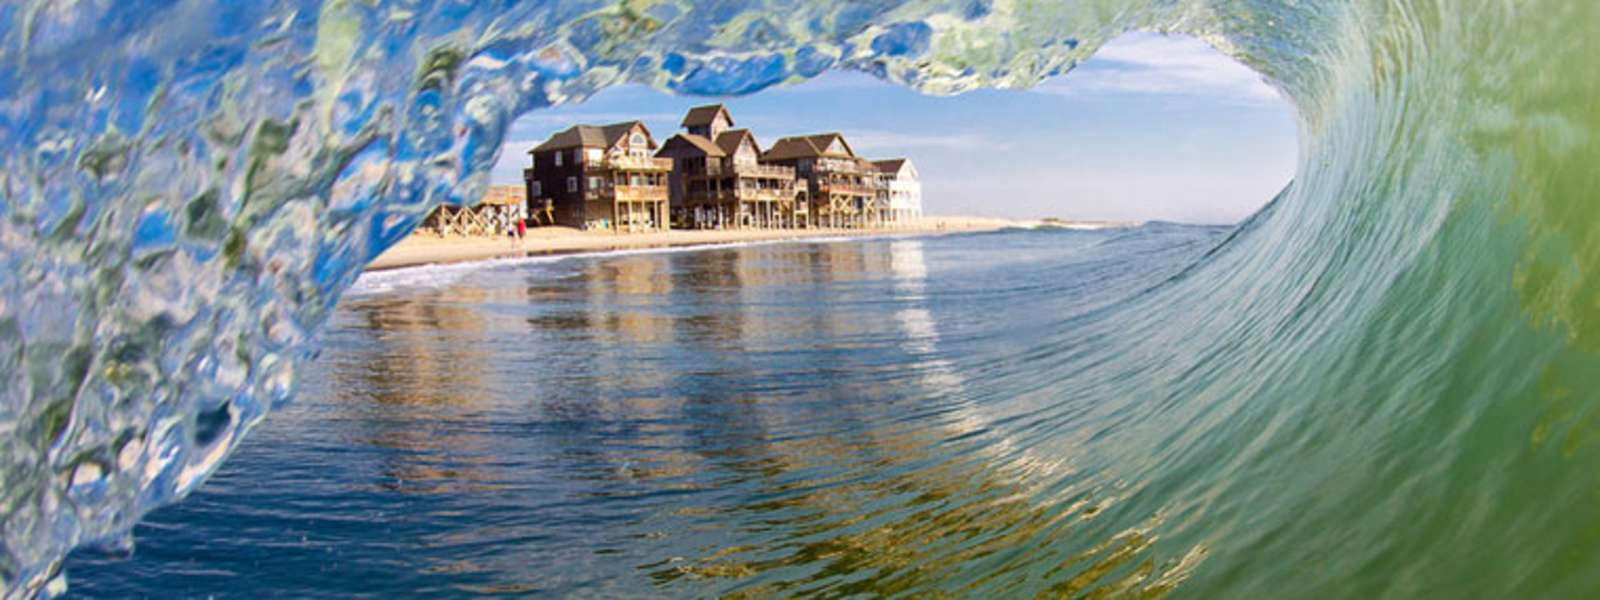 Waves - The Outer Banks - NC Vacations: Beach Rentals, Condos ...